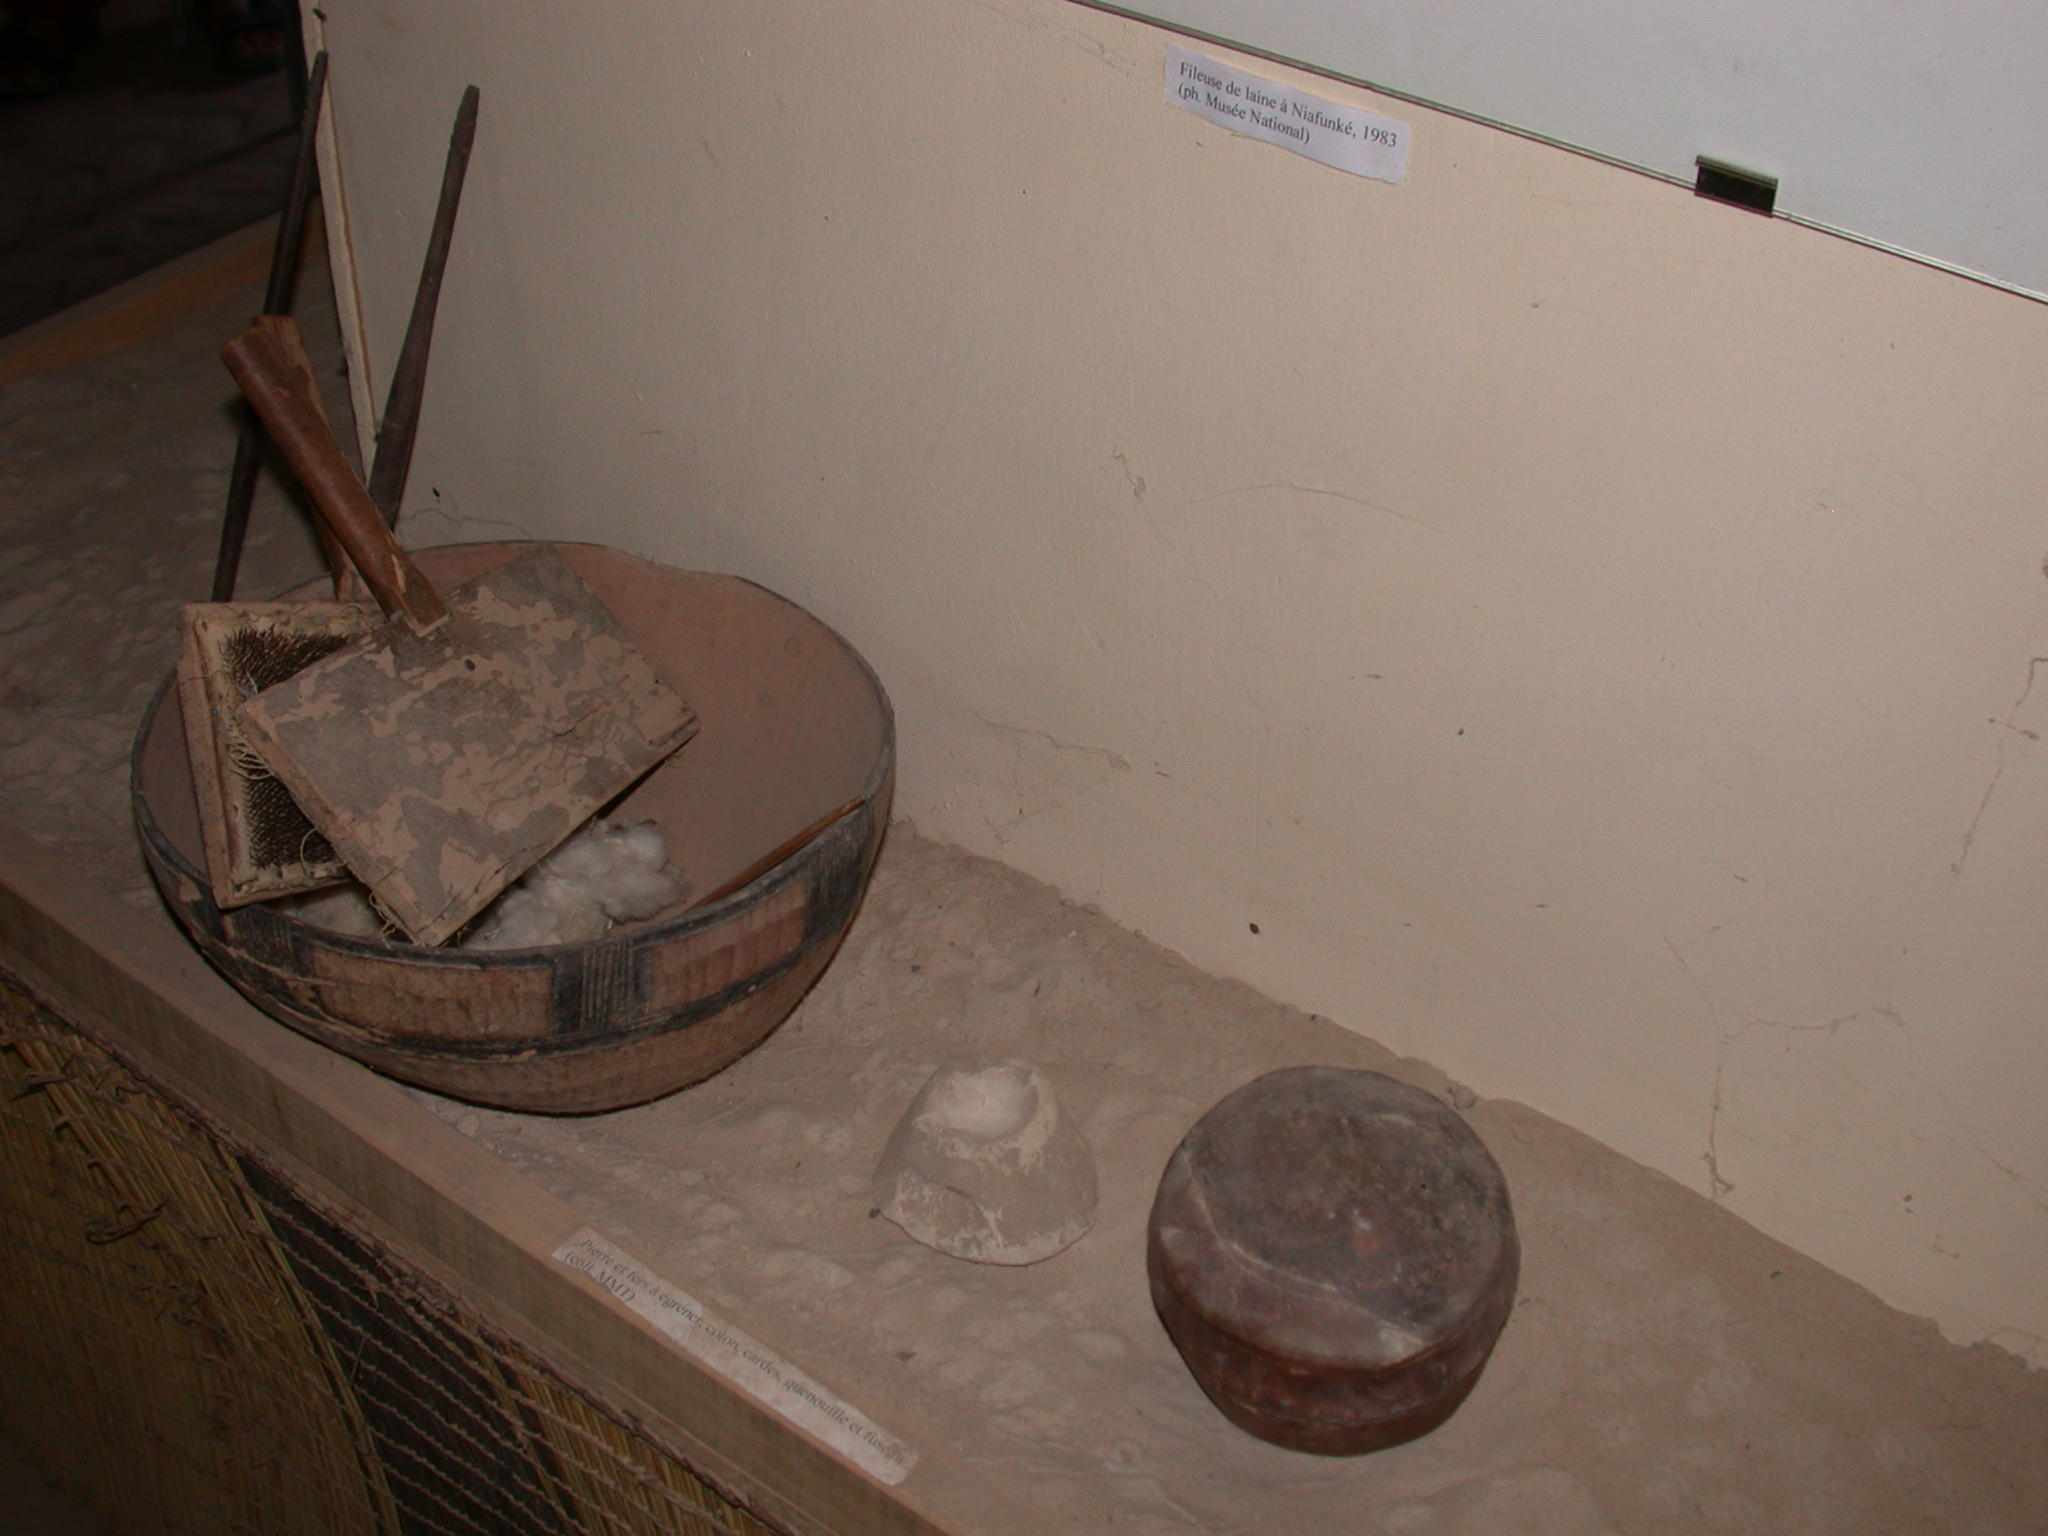 Stone and Irons for Hulling, Cotton, Carding Brushes, Stopper Rod, and Spindle, Timbuktu Ethnological Museum, Timbuktu, Mali